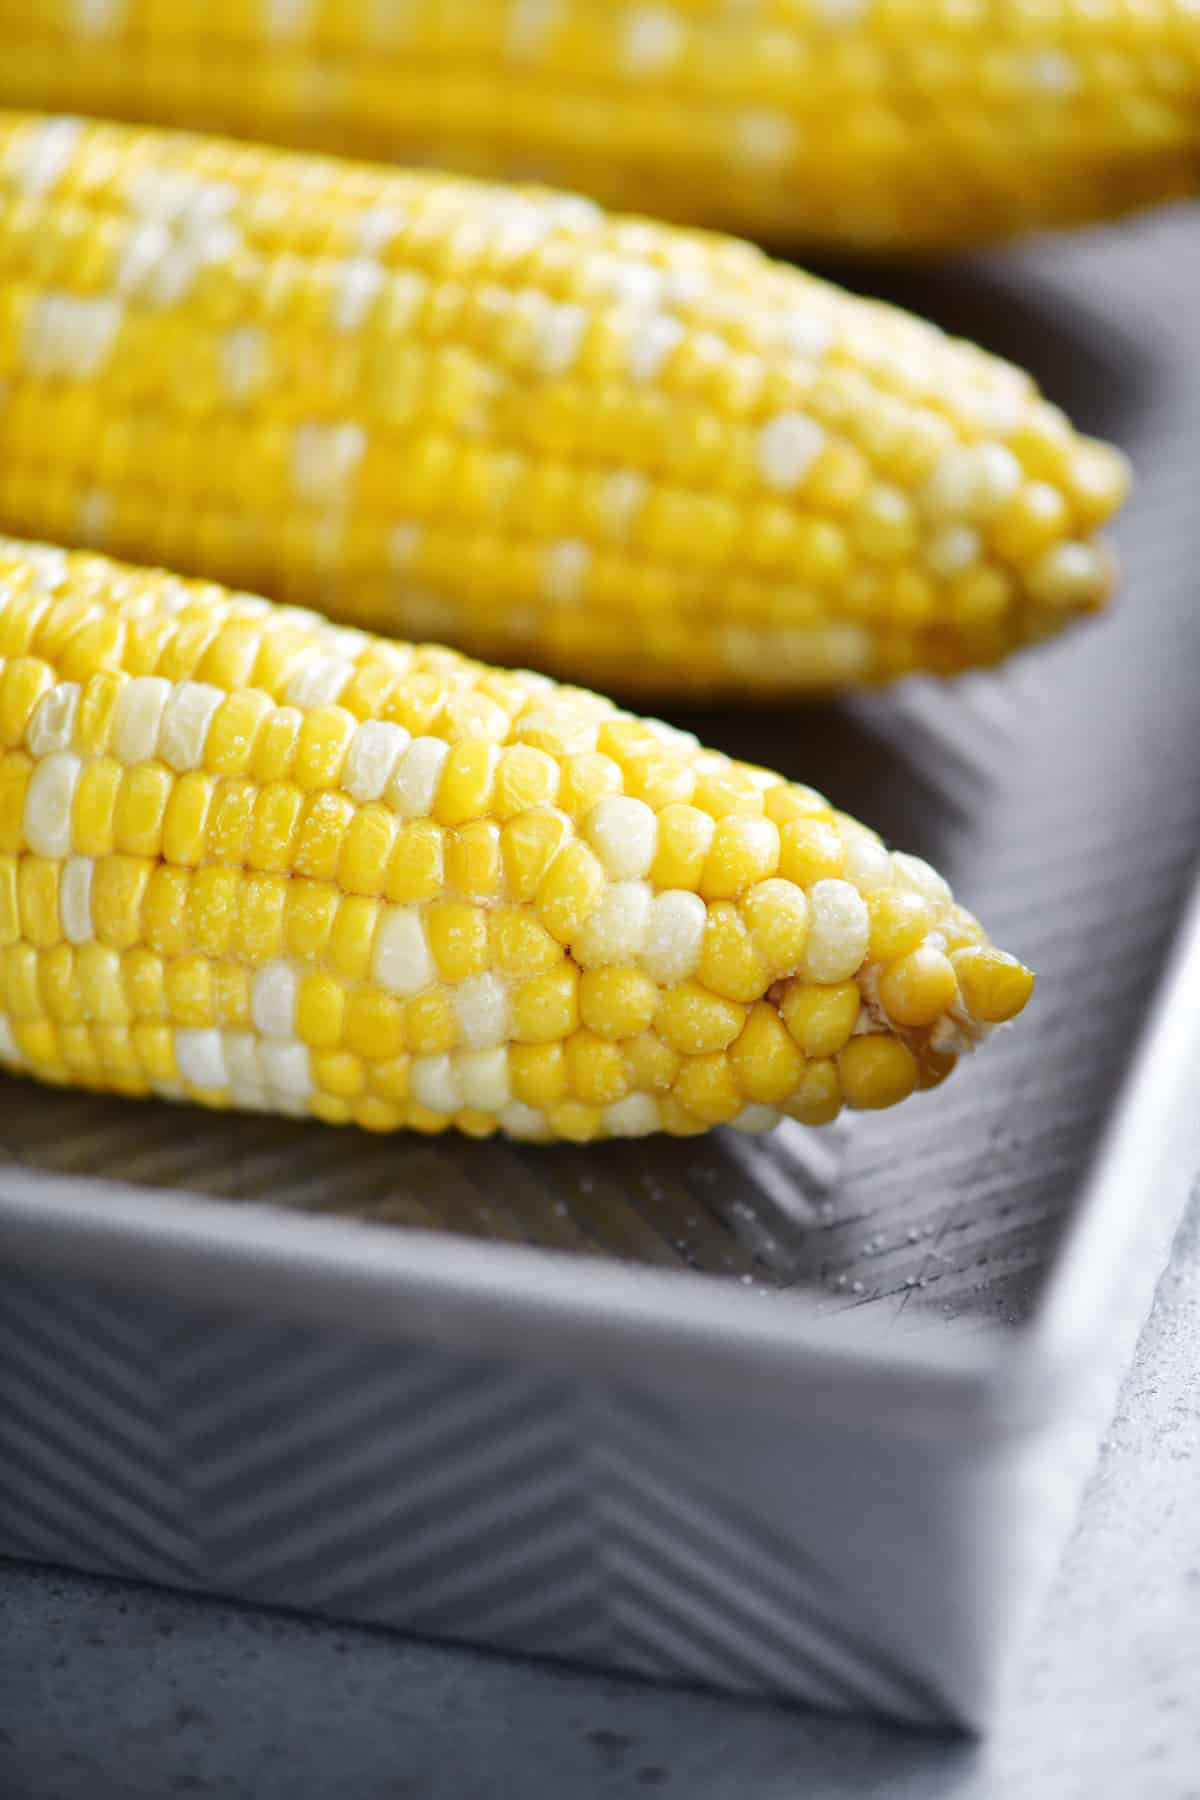 oven roasted corn on the cob in a pan